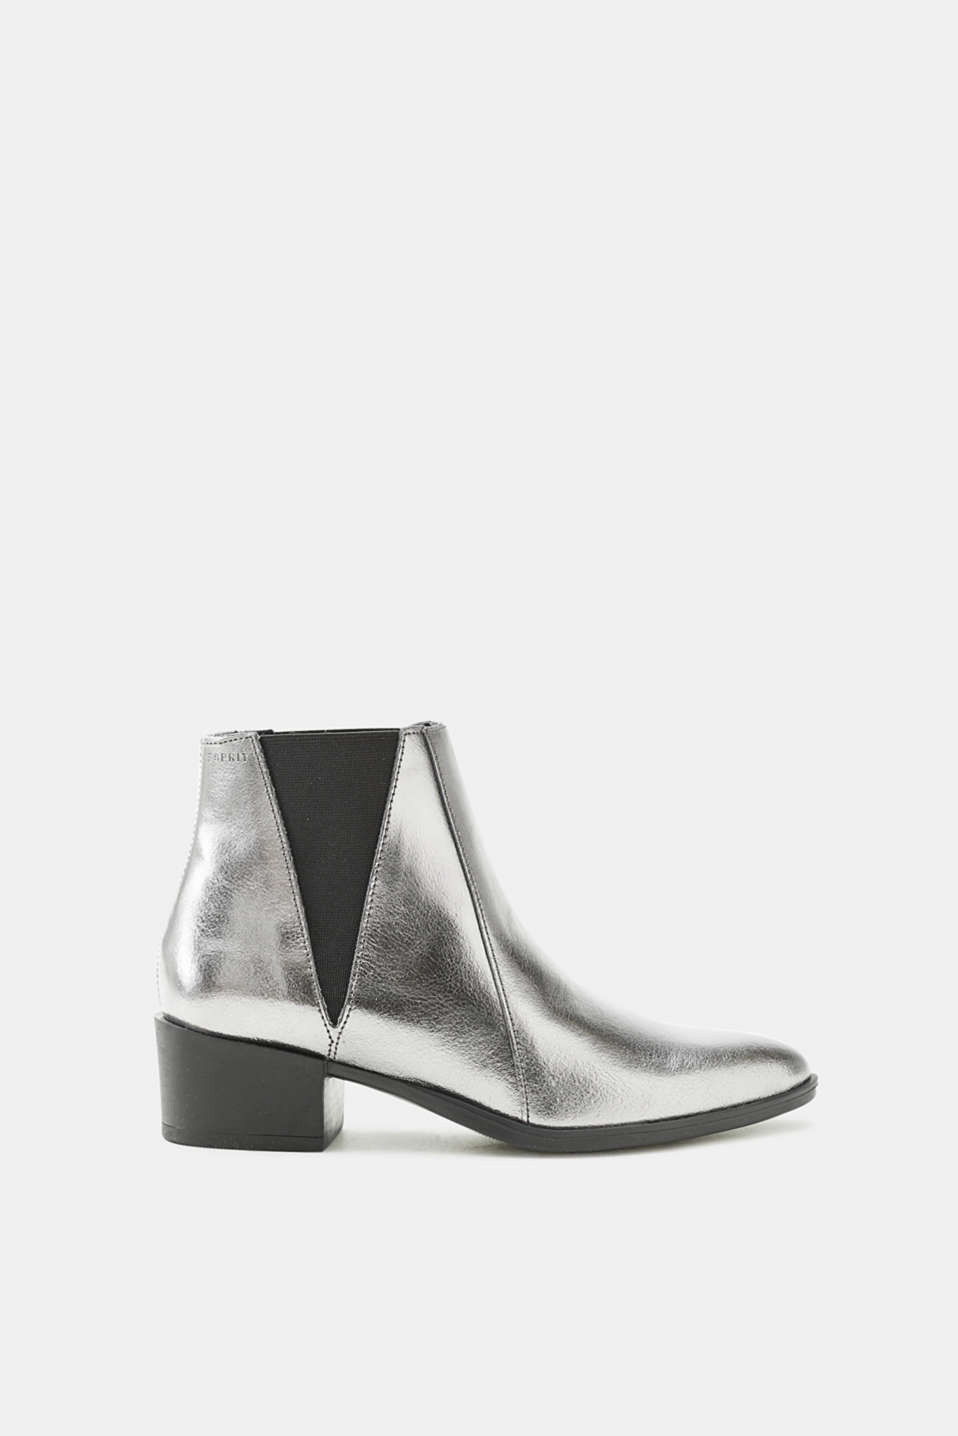 Esprit - Chelsea boots with a block heel